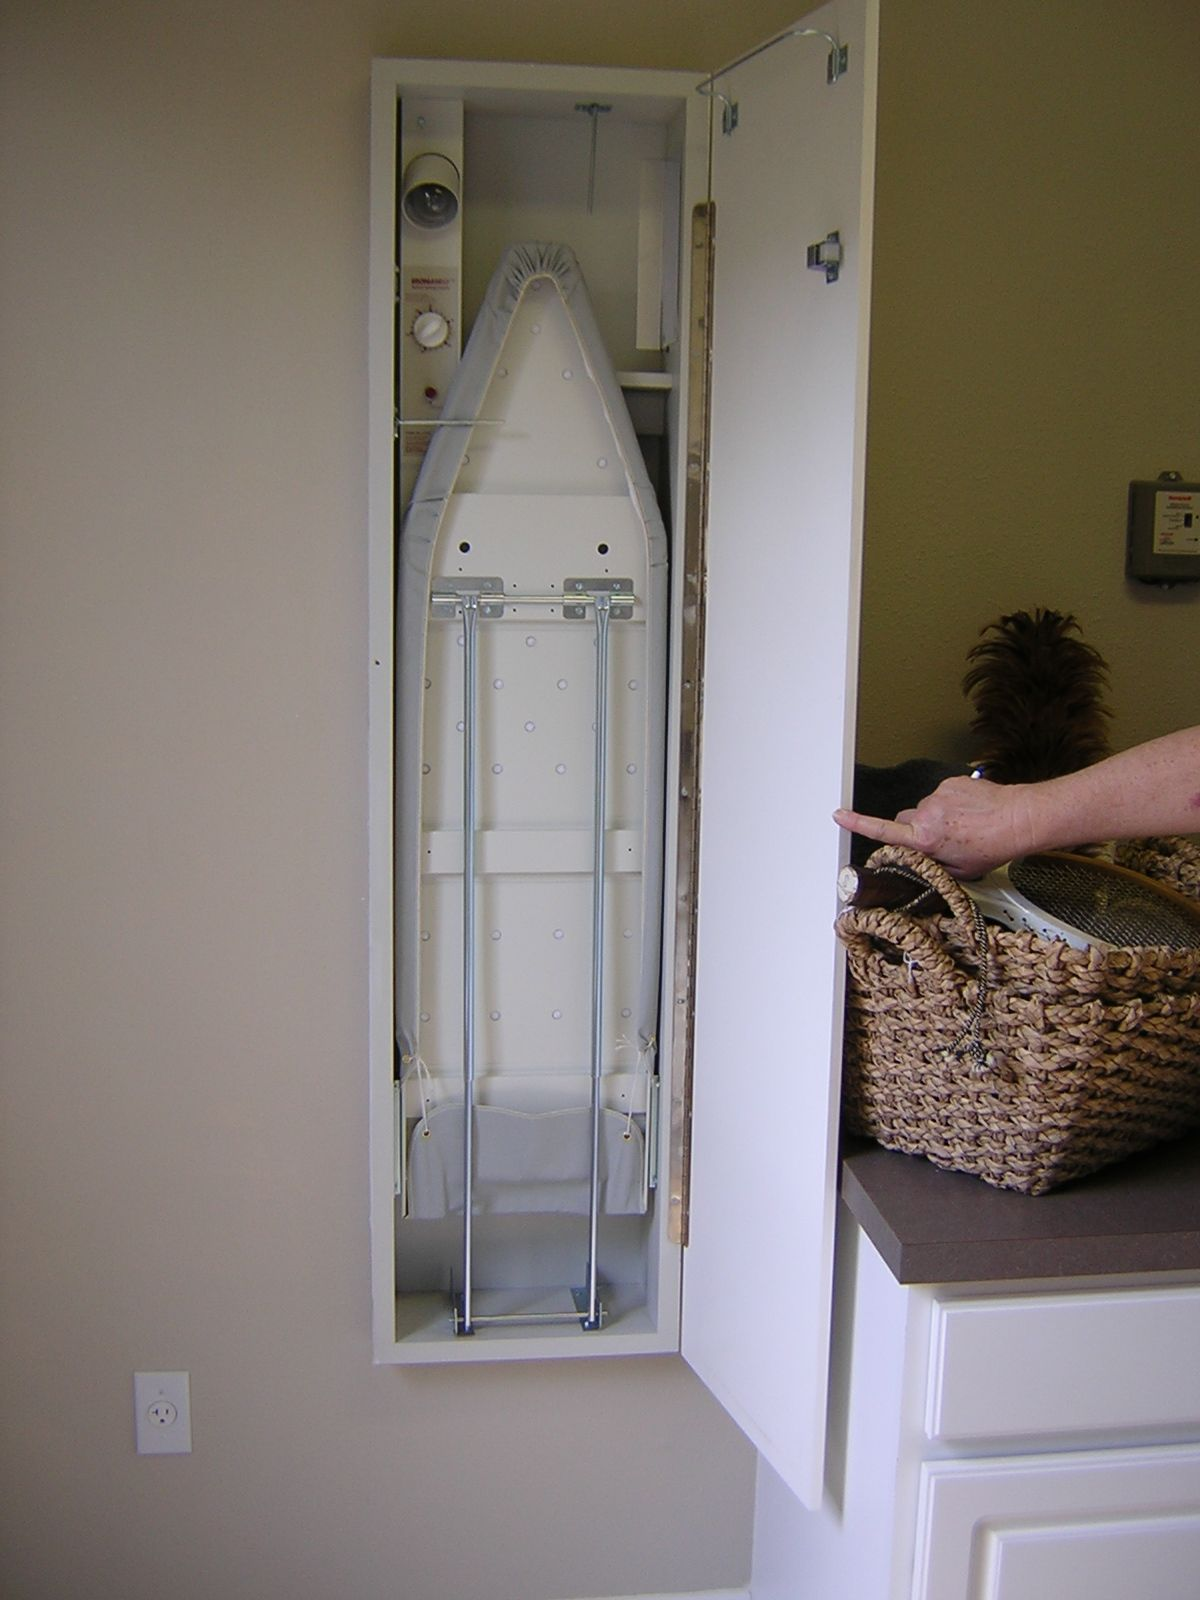 Ironing Board Door Wall Mounted Ironing Board Mounted Ironing Boards Ironing Board Cabinet